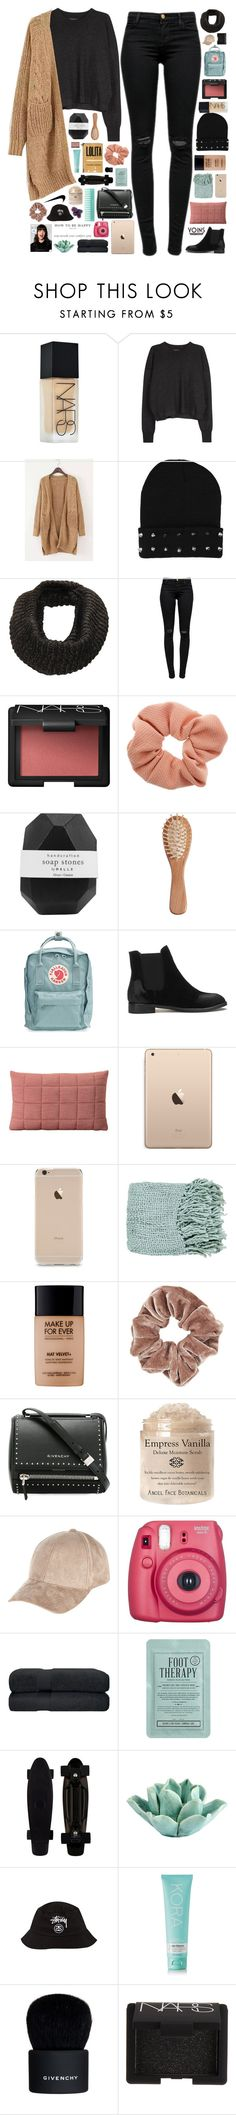 """""""Read description - Yoins 7"""" by ladyturquoise8 ❤ liked on Polyvore featuring NARS Cosmetics, Isabel Marant, J Brand, Dorothy Perkins, Pelle, The Unbranded Brand, Fjällräven, Muuto, Surya and MAKE UP FOR EVER"""